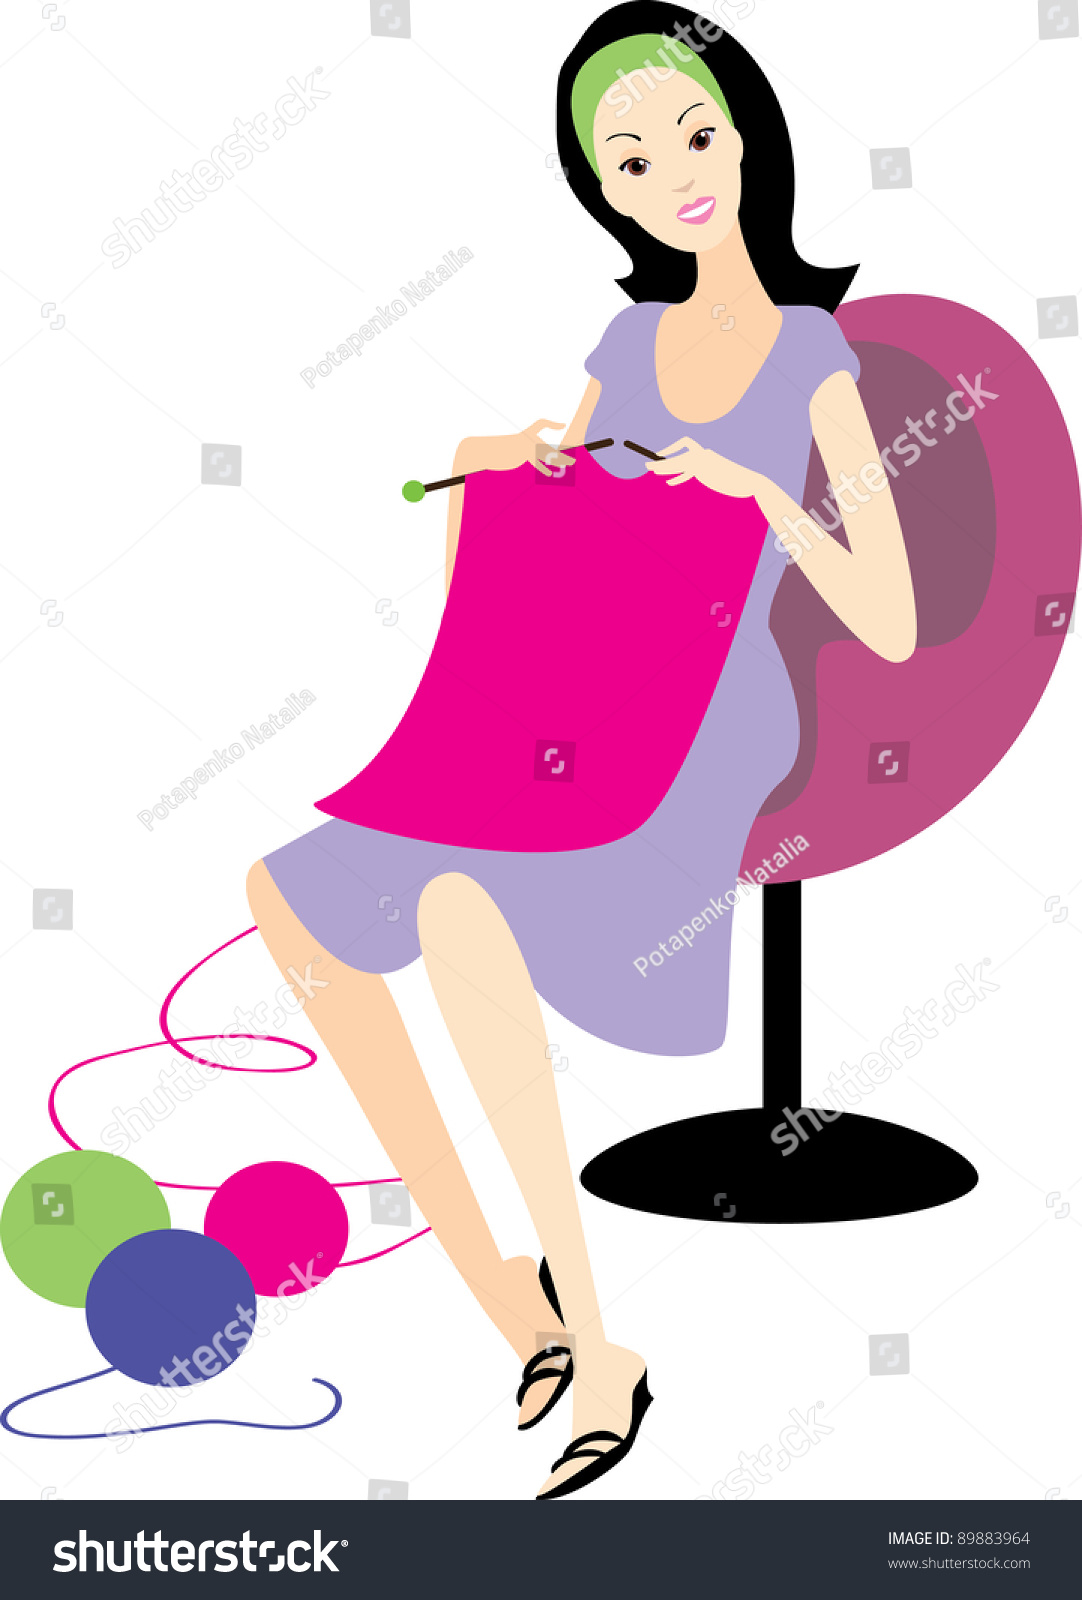 Person Knitting Clipart : Girl knitting clipart pixshark images